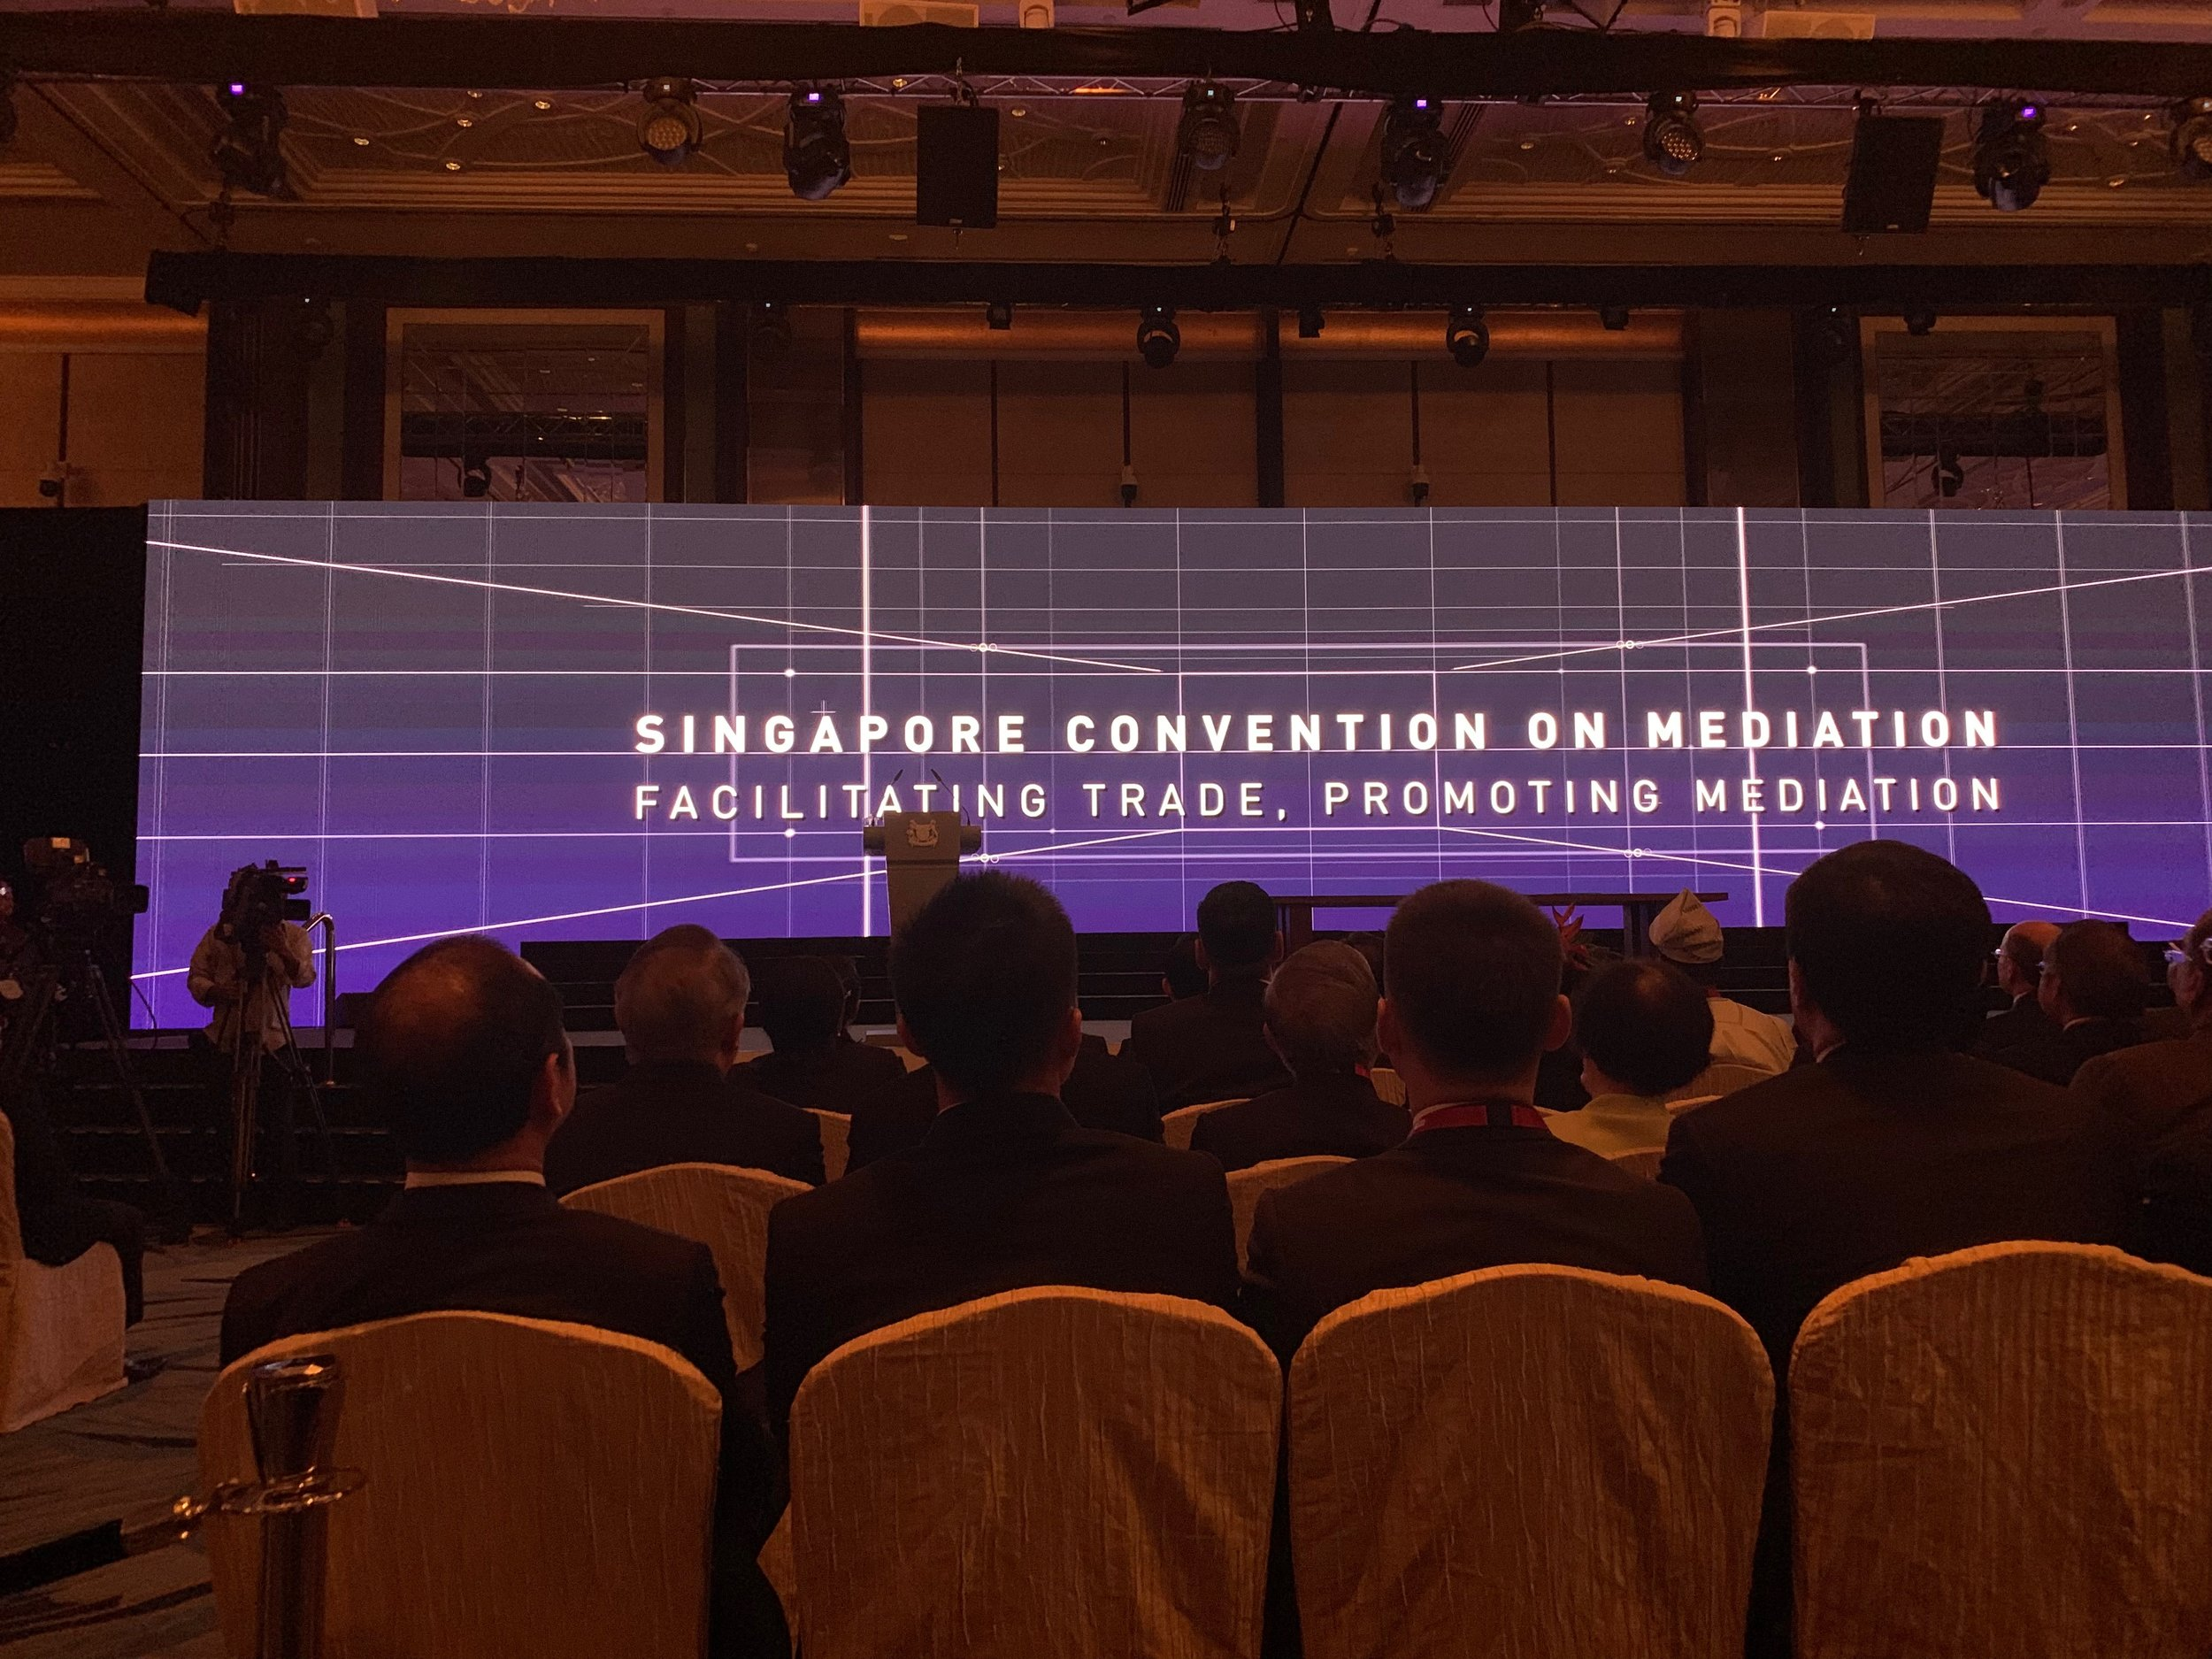 The Singapore Convention on Mediation was signed by 46 countries on 7 August 2019